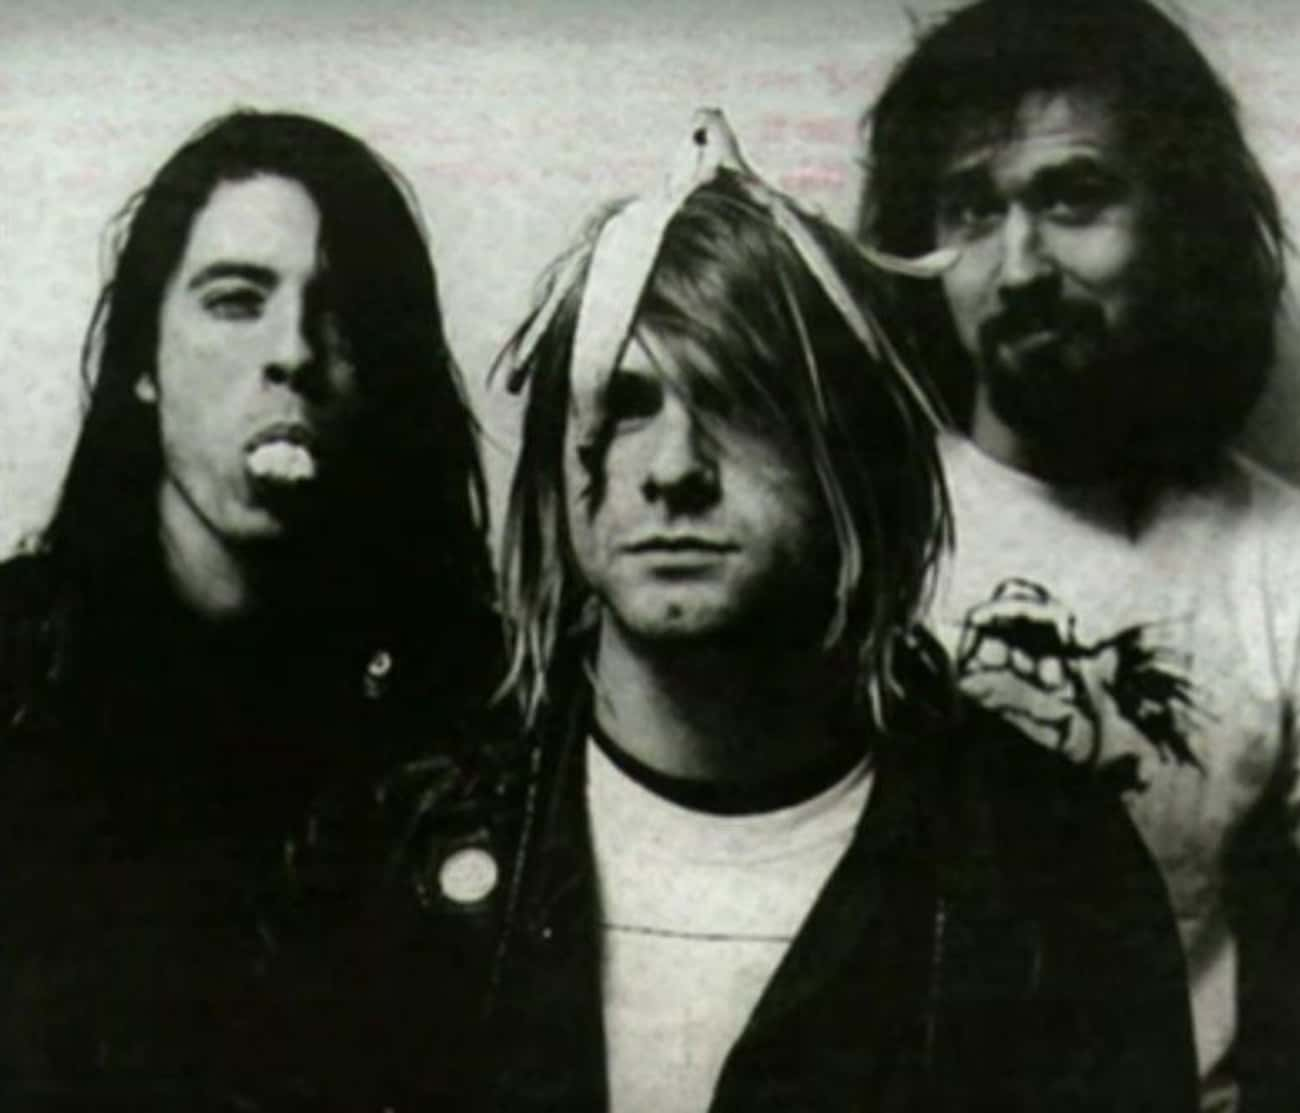 They Got Kicked Out Of The Nev is listed (or ranked) 3 on the list 15 Crazy But True Stories About Nirvana